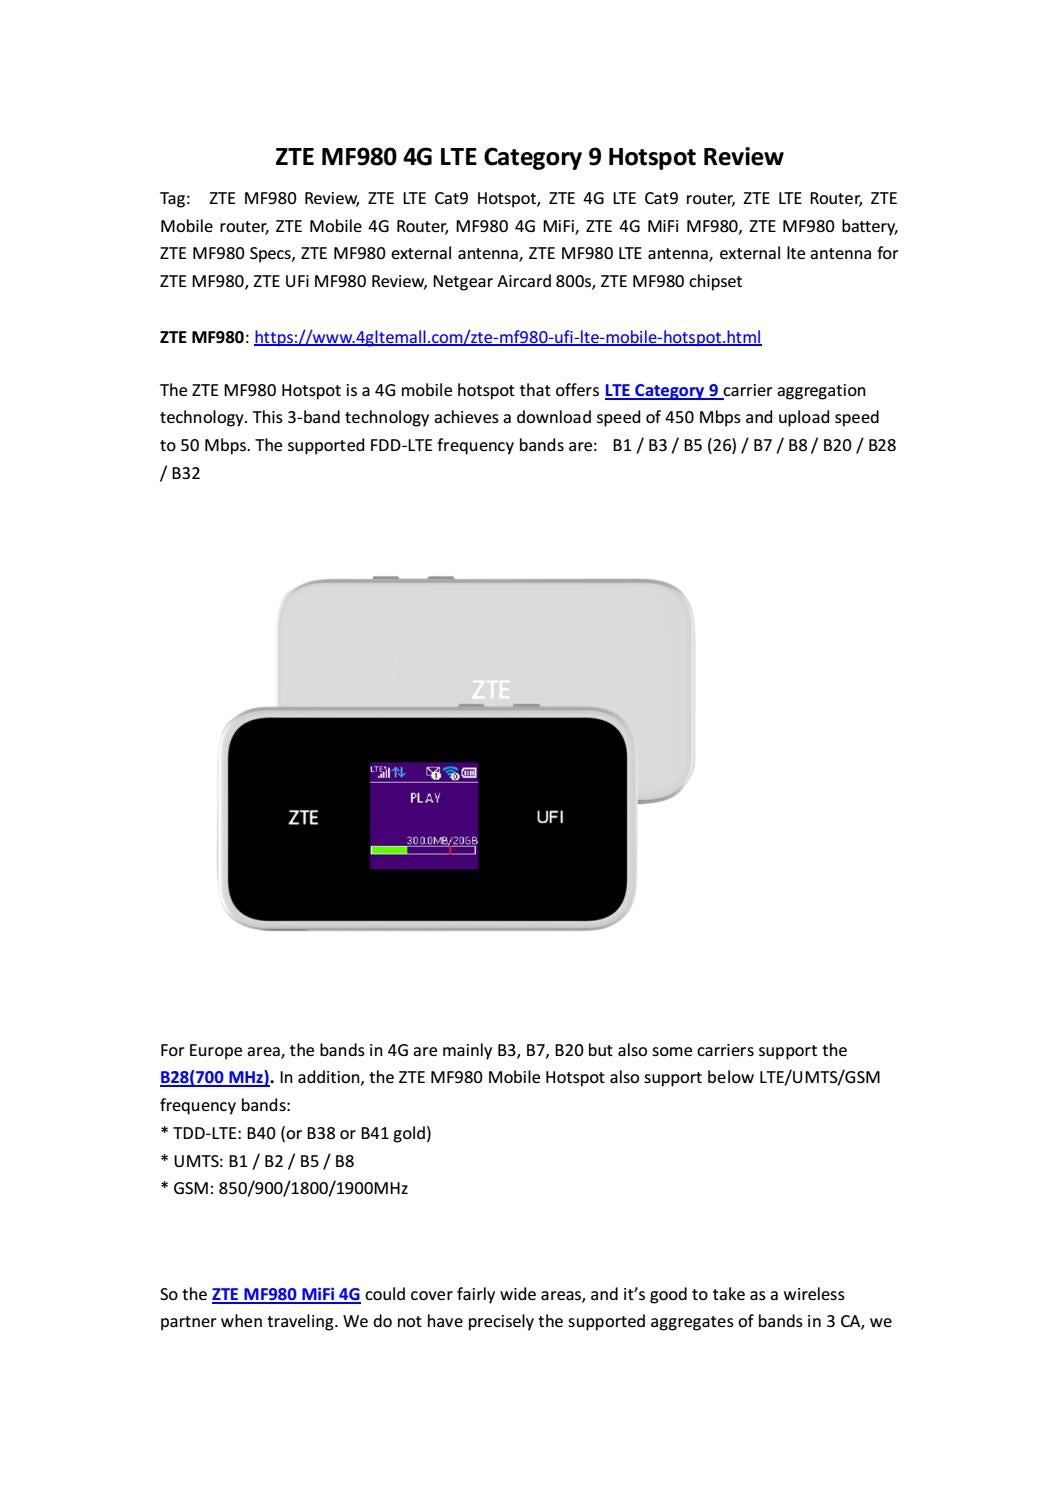 ZTE MF980 4G LTE Category 9 Hotspot Review by Lte Mall - issuu